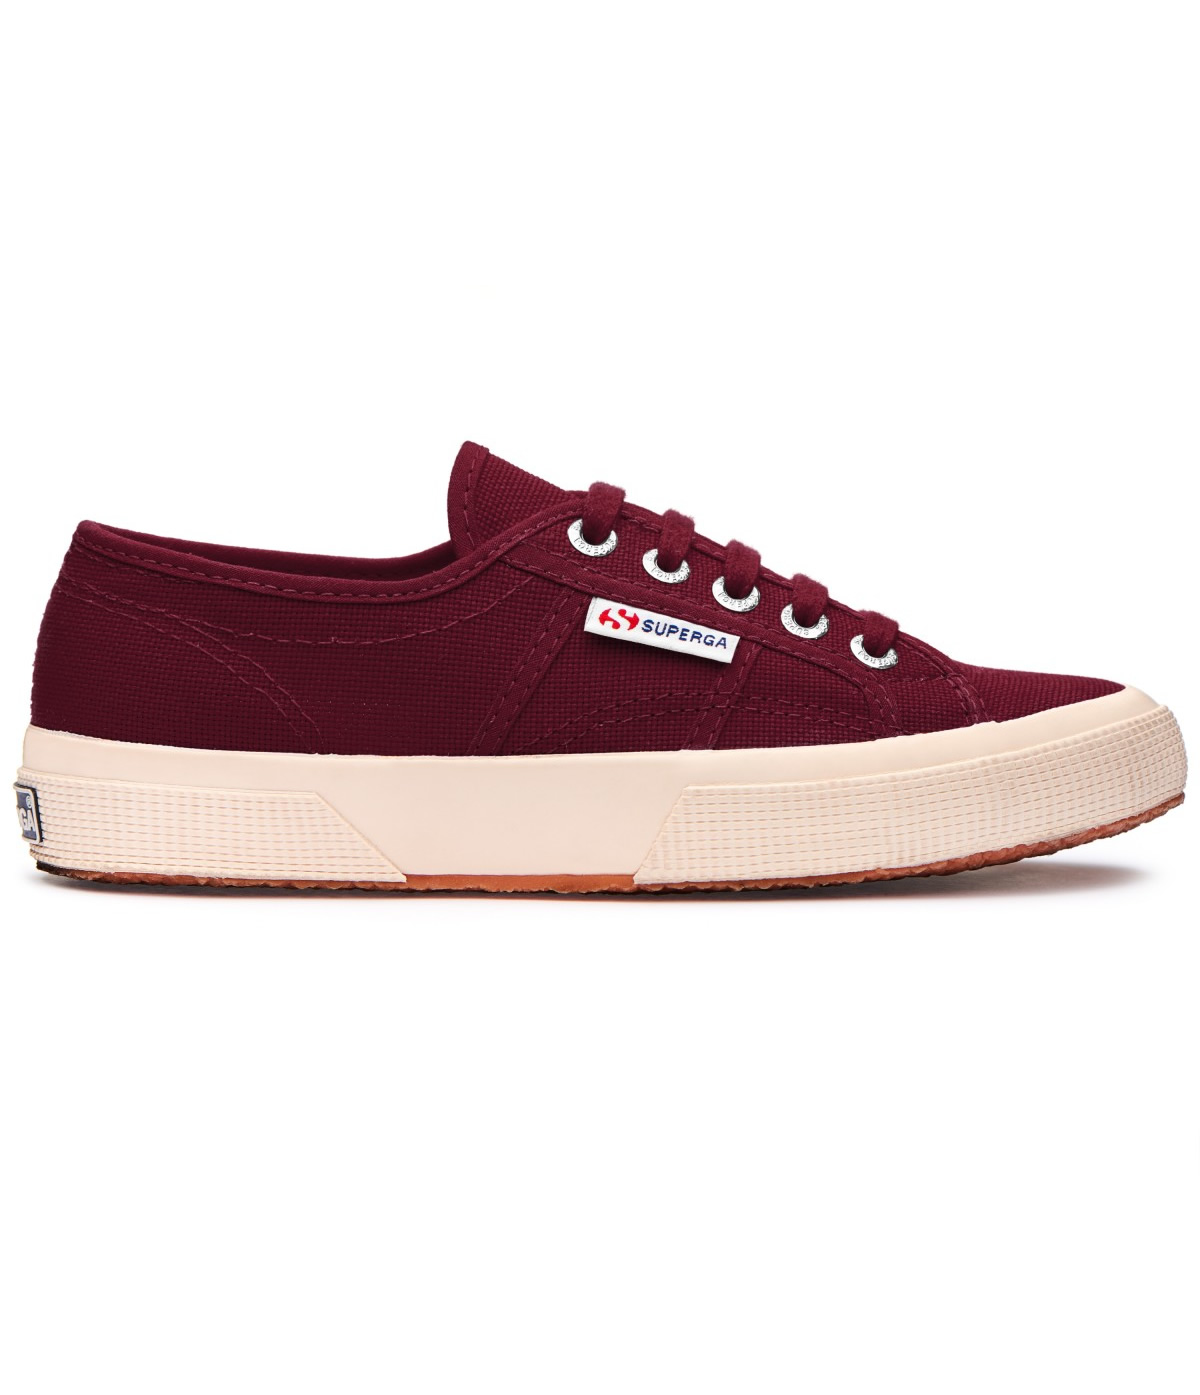 Zapatillas Superga Burdeos